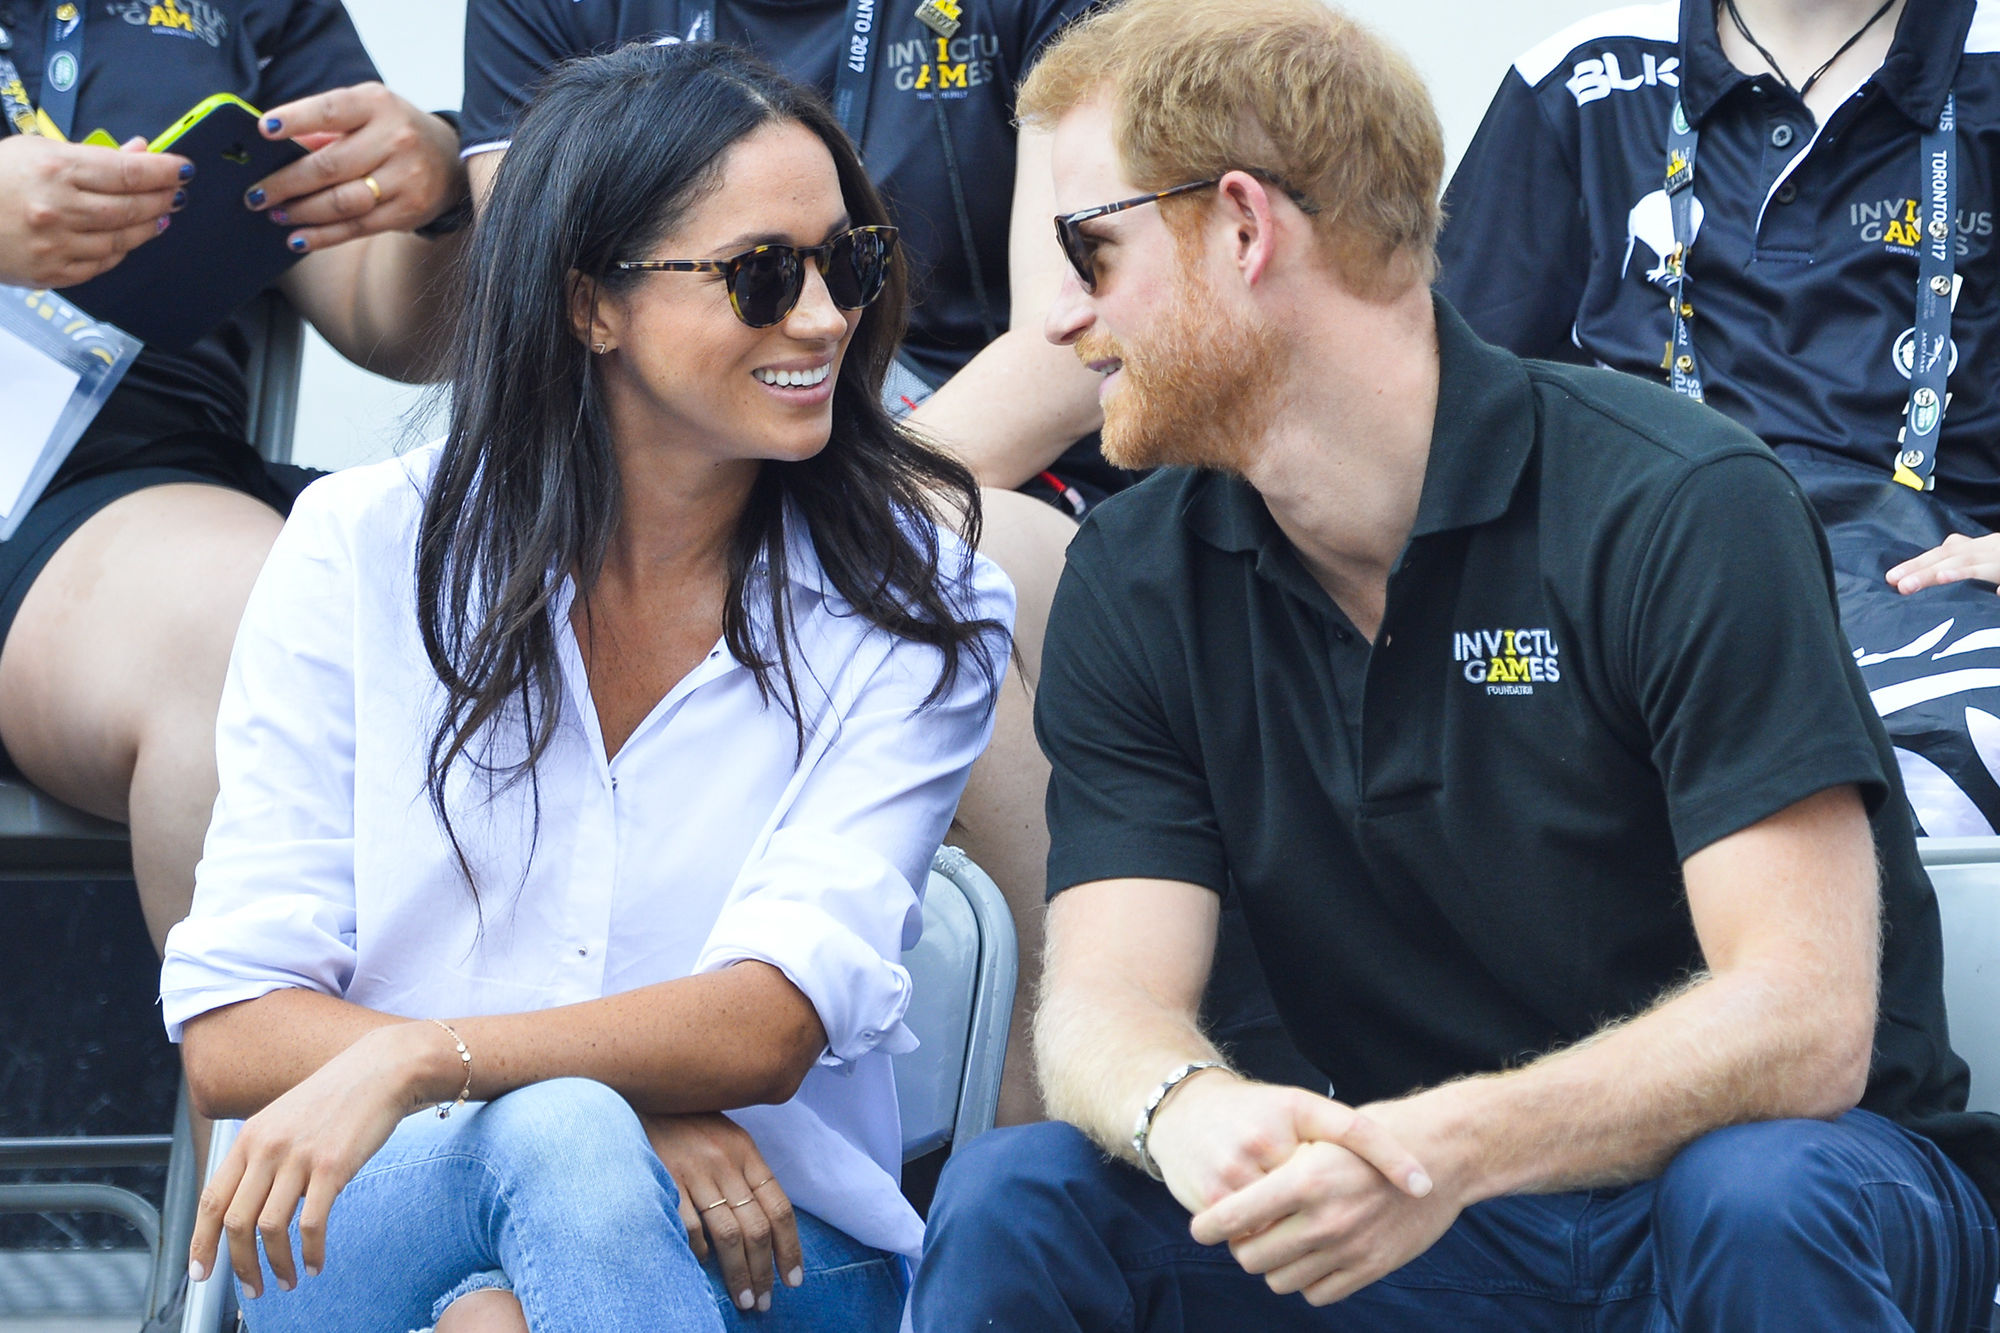 WATCH: Prince Harry Is Engaged to Meghan Markle!